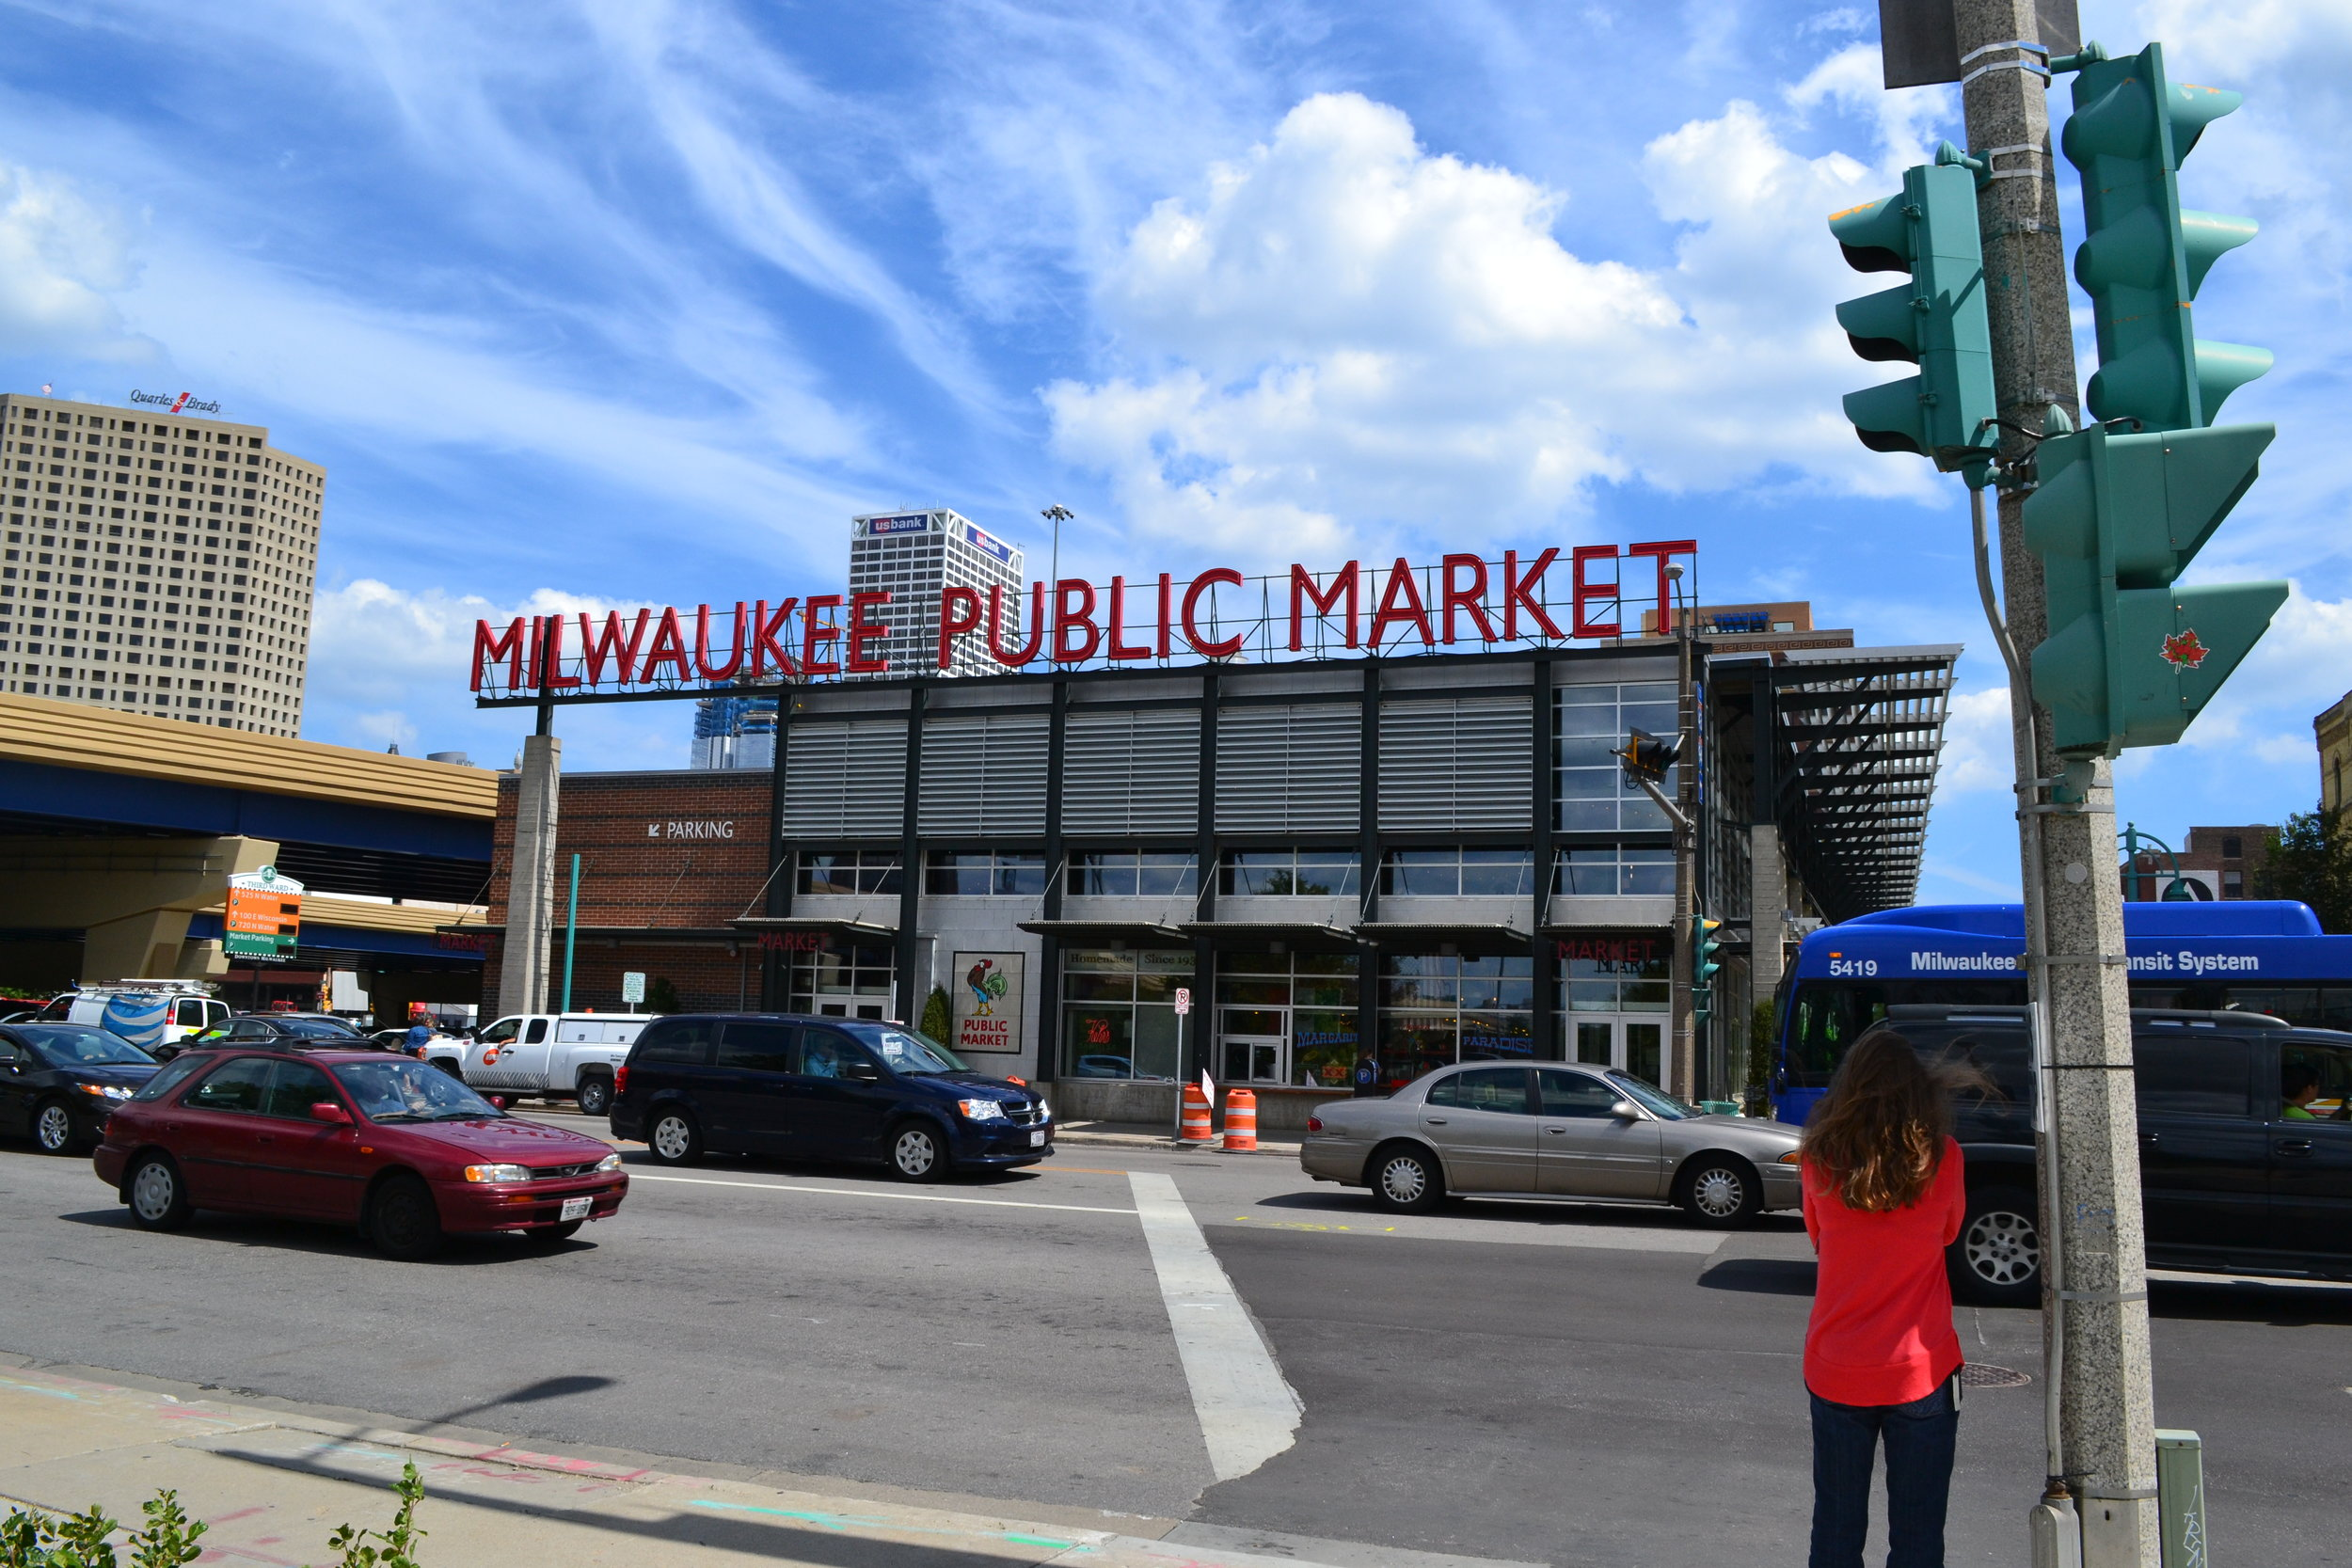 Milwaukee's Public Market. Home to good food, cool local shops, brews and more!